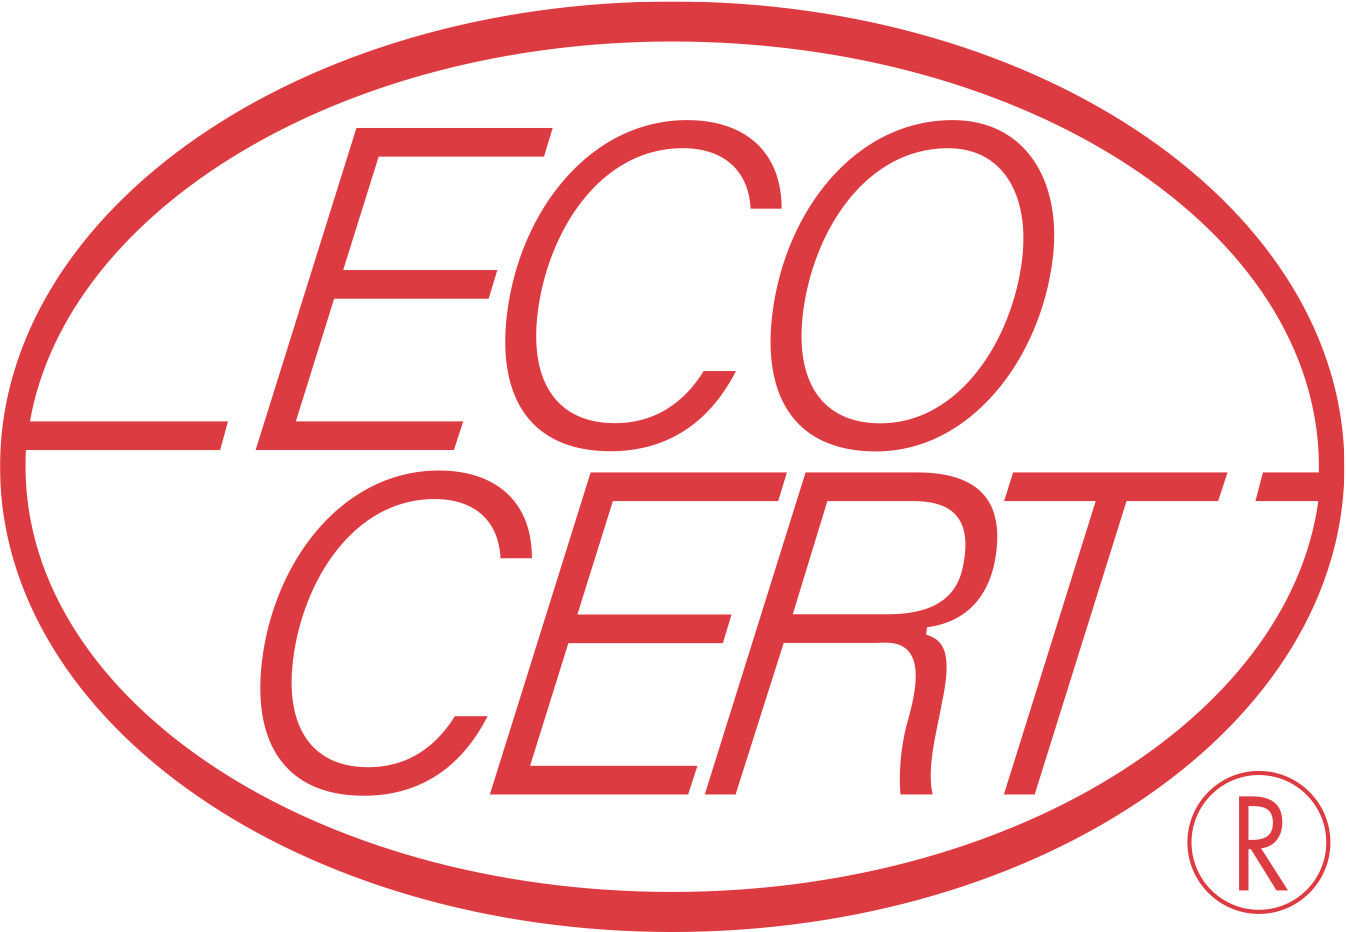 Ecocert essential oil